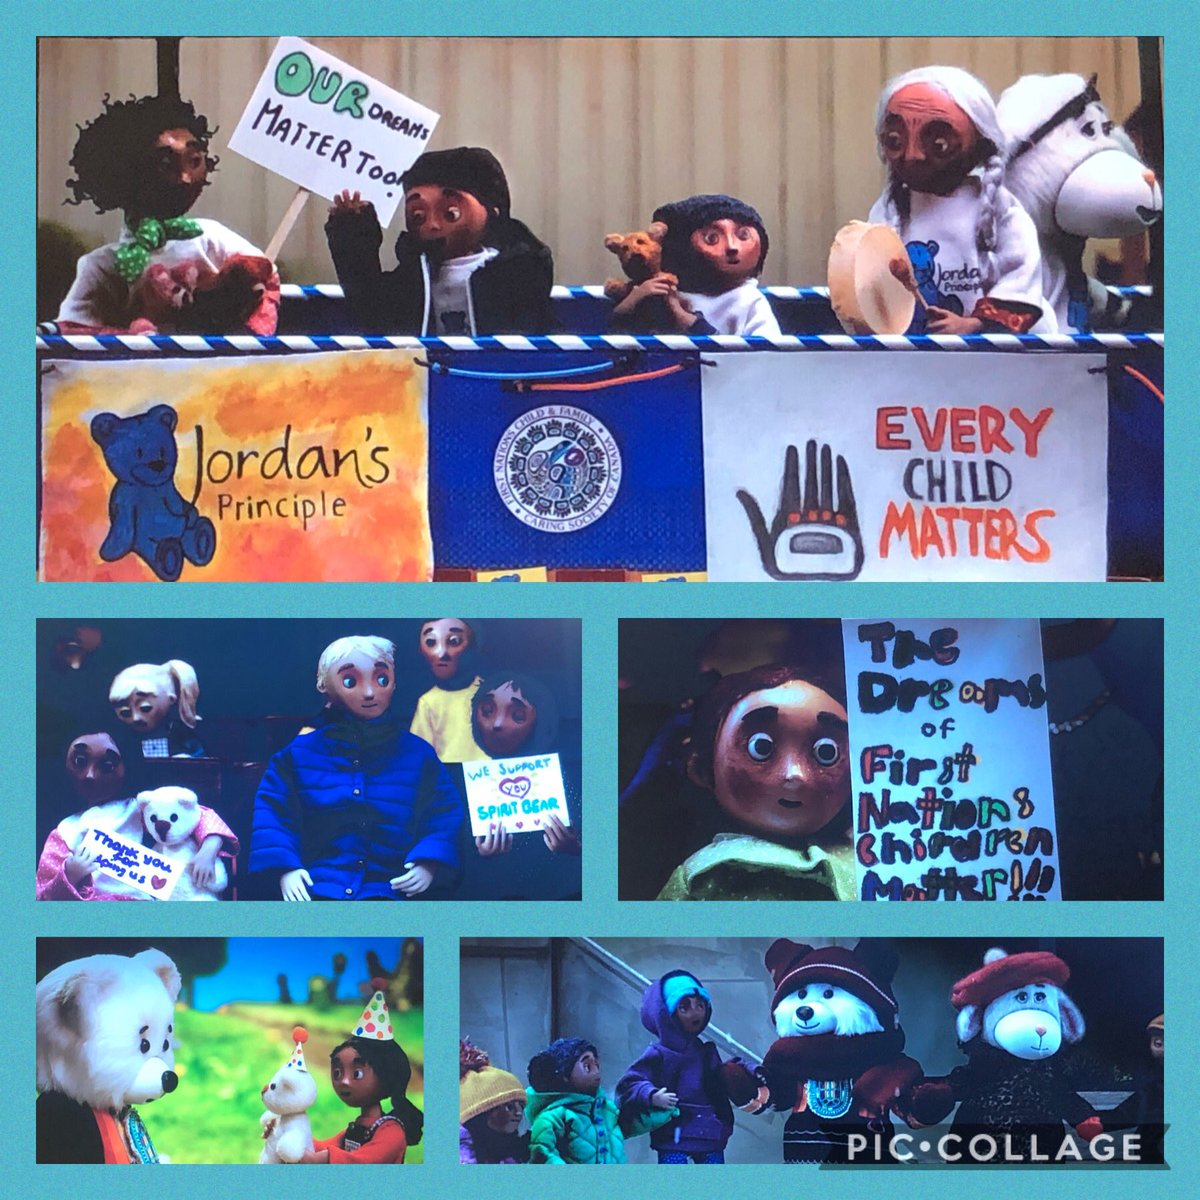 Thank you @CaringSociety for sharing your story with @DorsetDrive Ss. We are learning so much about fairness, power, discrimination, equality, and how to fight for justice #indigenousheritagemonth